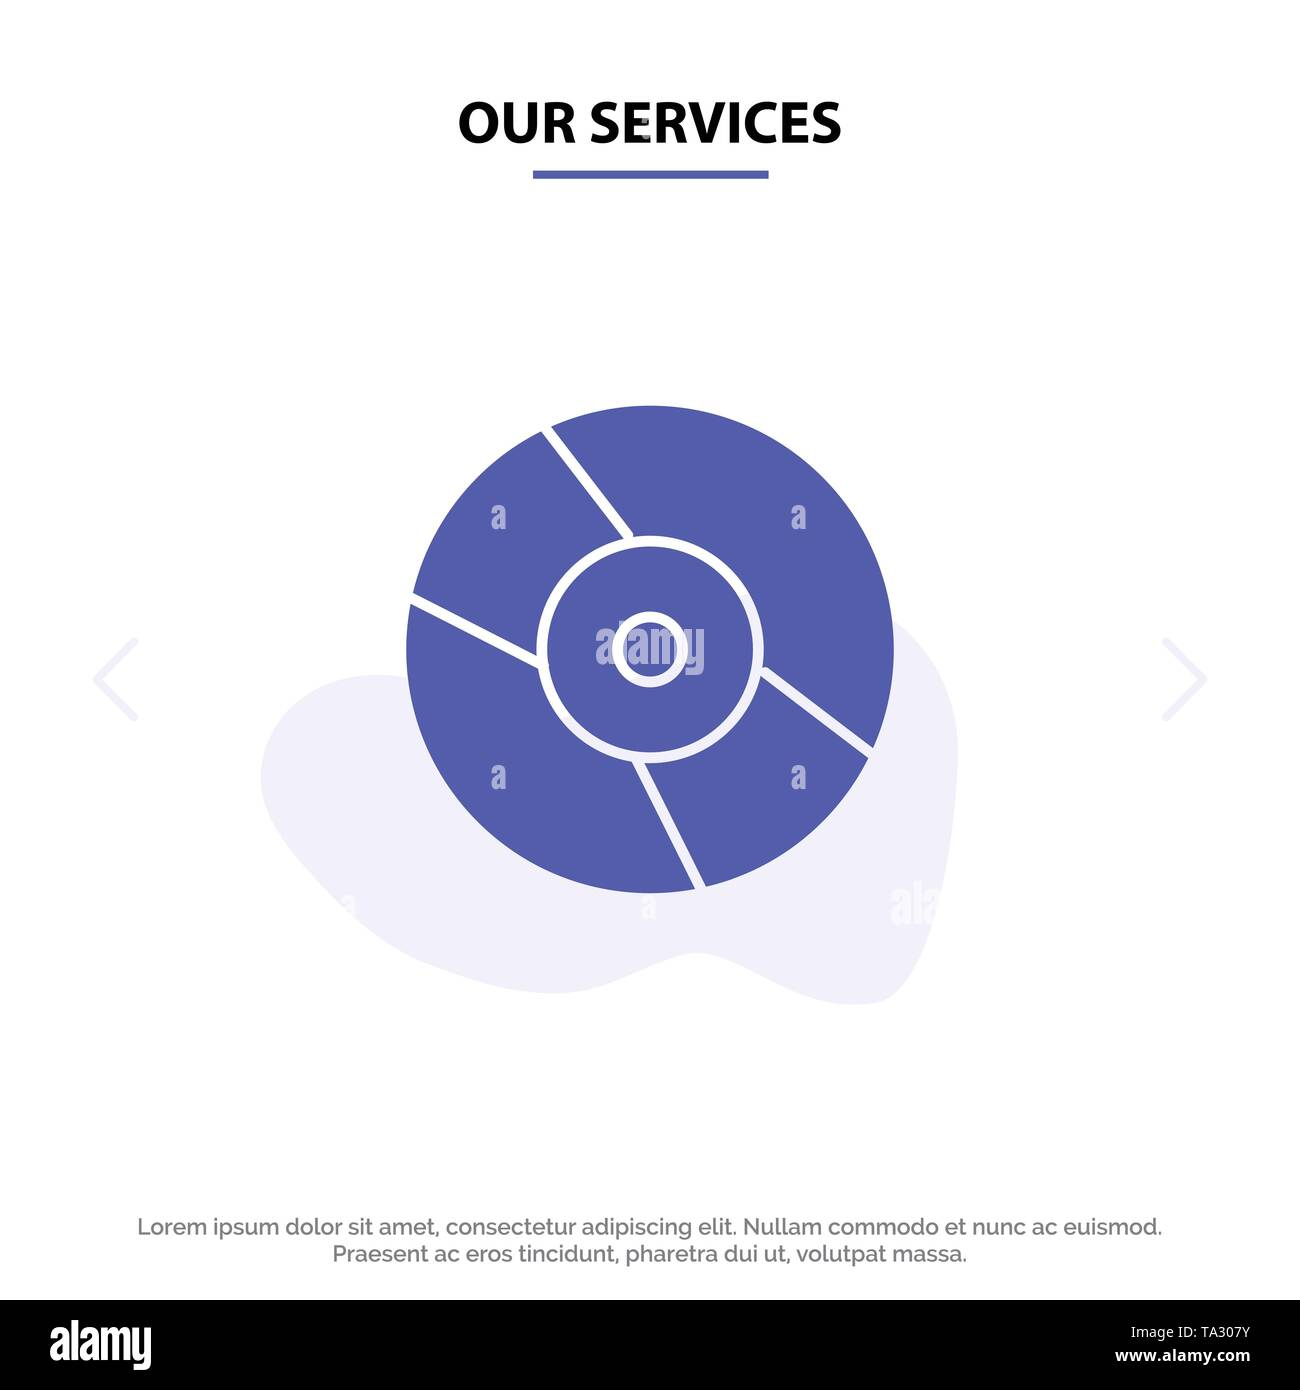 hight resolution of our services cd dvd disk device solid glyph icon web card template